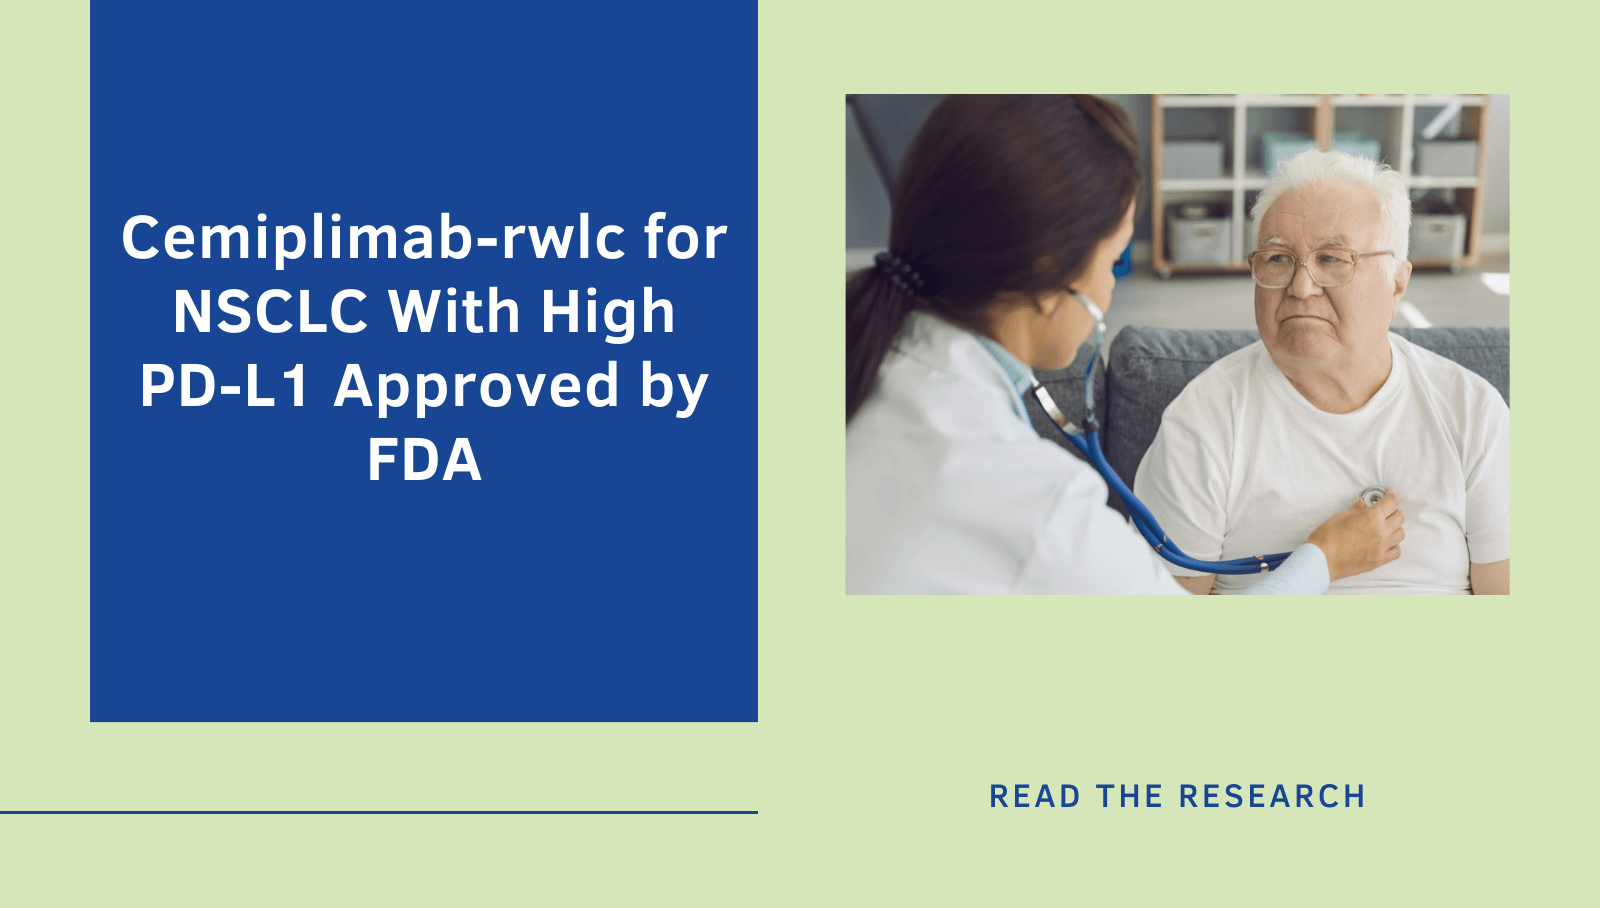 Cemiplimab-rwlc for NSCLC With High PD-L1 approved by FDA